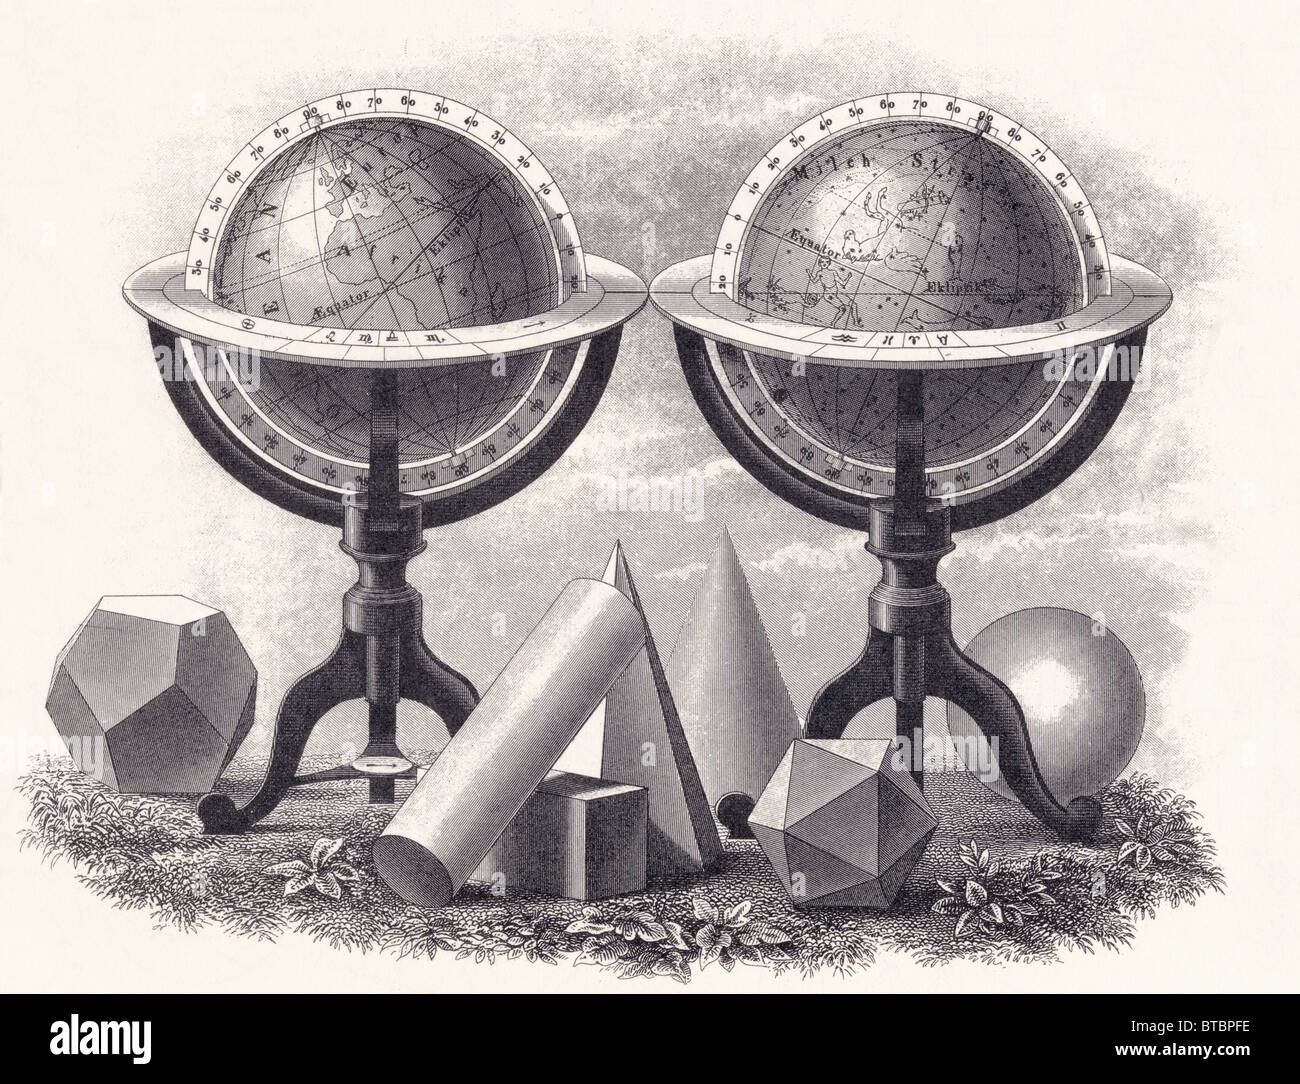 Globes of the Earth and the Heavens surrounded by geometrical forms. - Stock Image